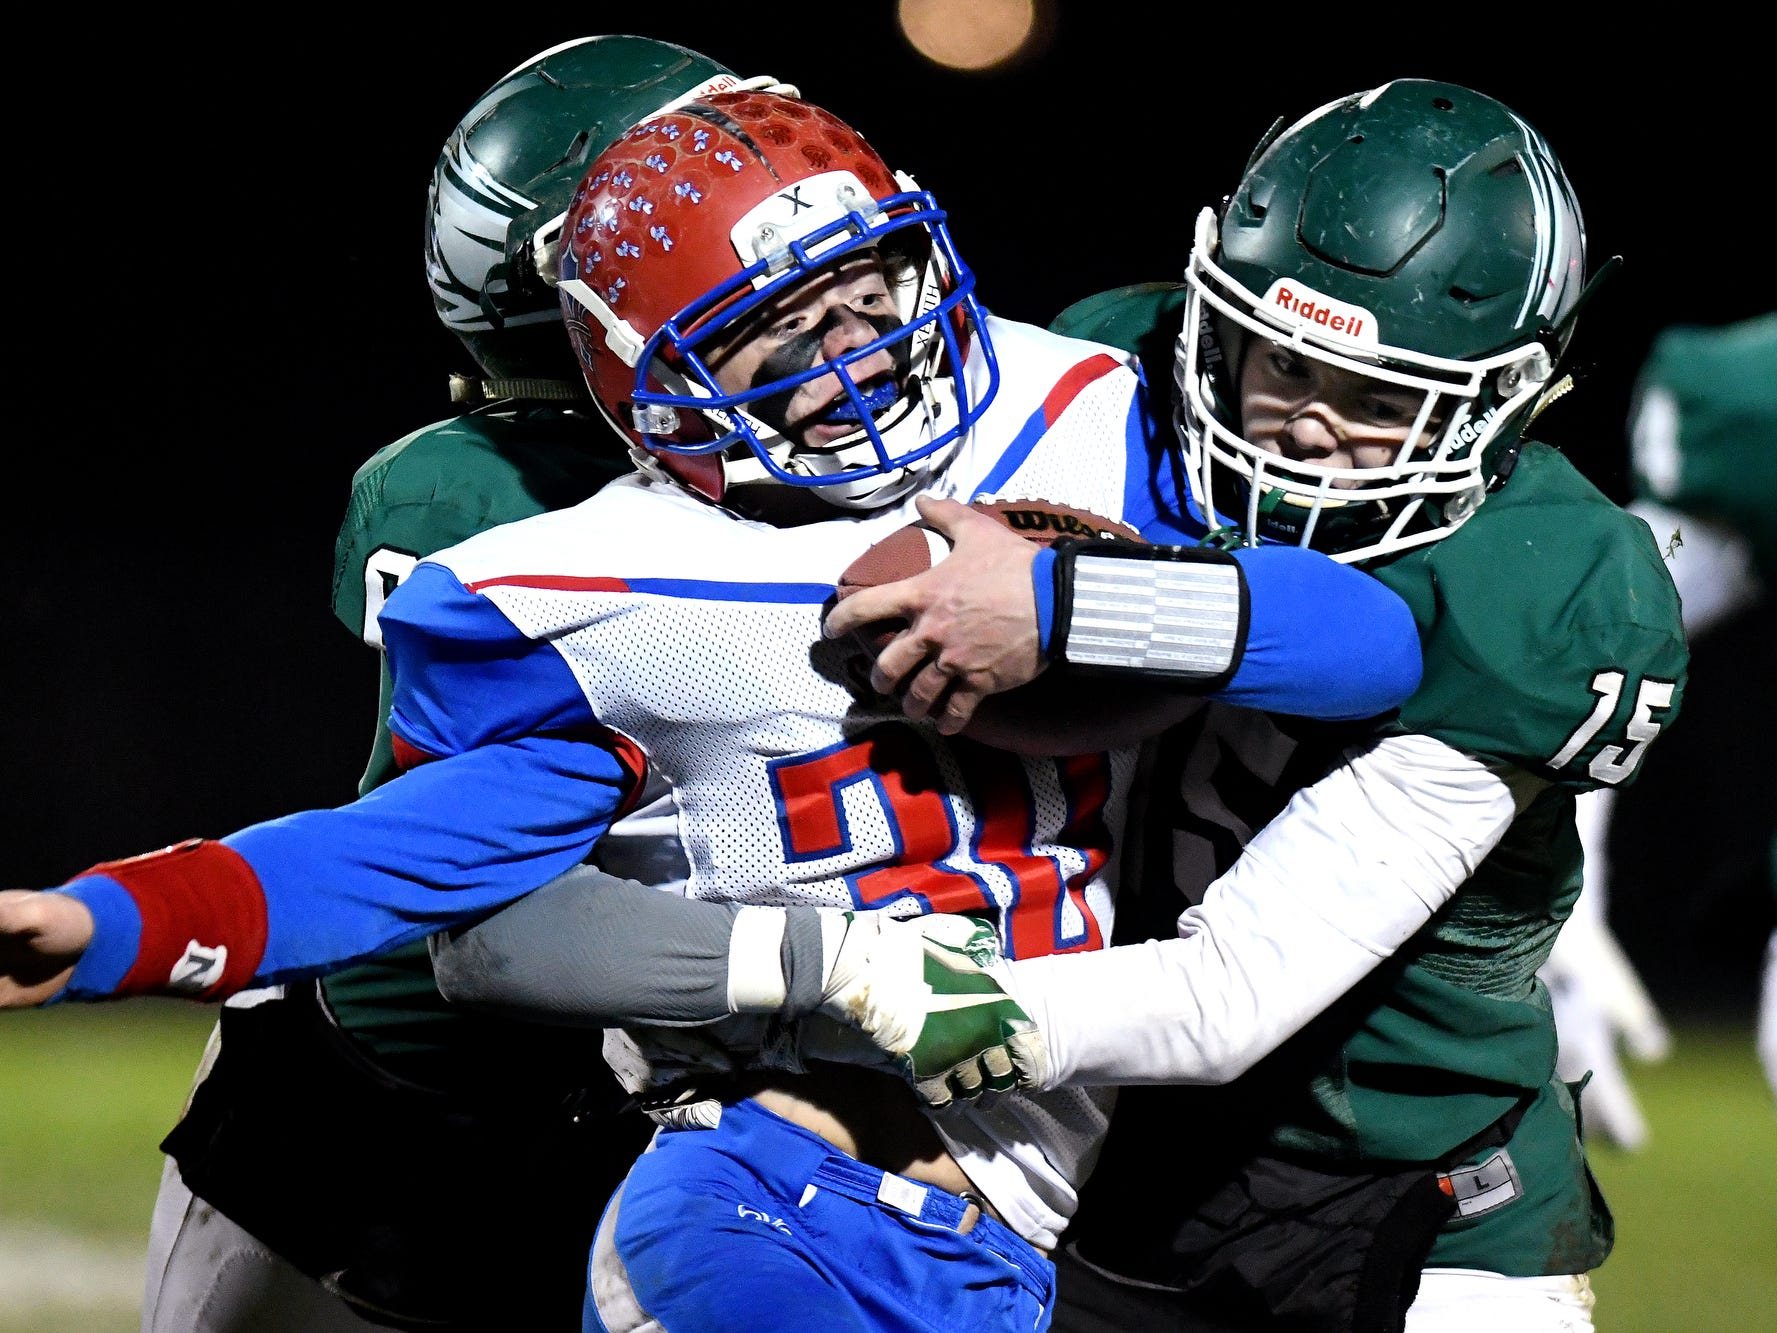 Williamston's Jackson Slocum, right, and Alvin Habba tackle St. Clair's Branden Reuba during the first quarter on Friday, Nov. 9, 2018, in Williamston.